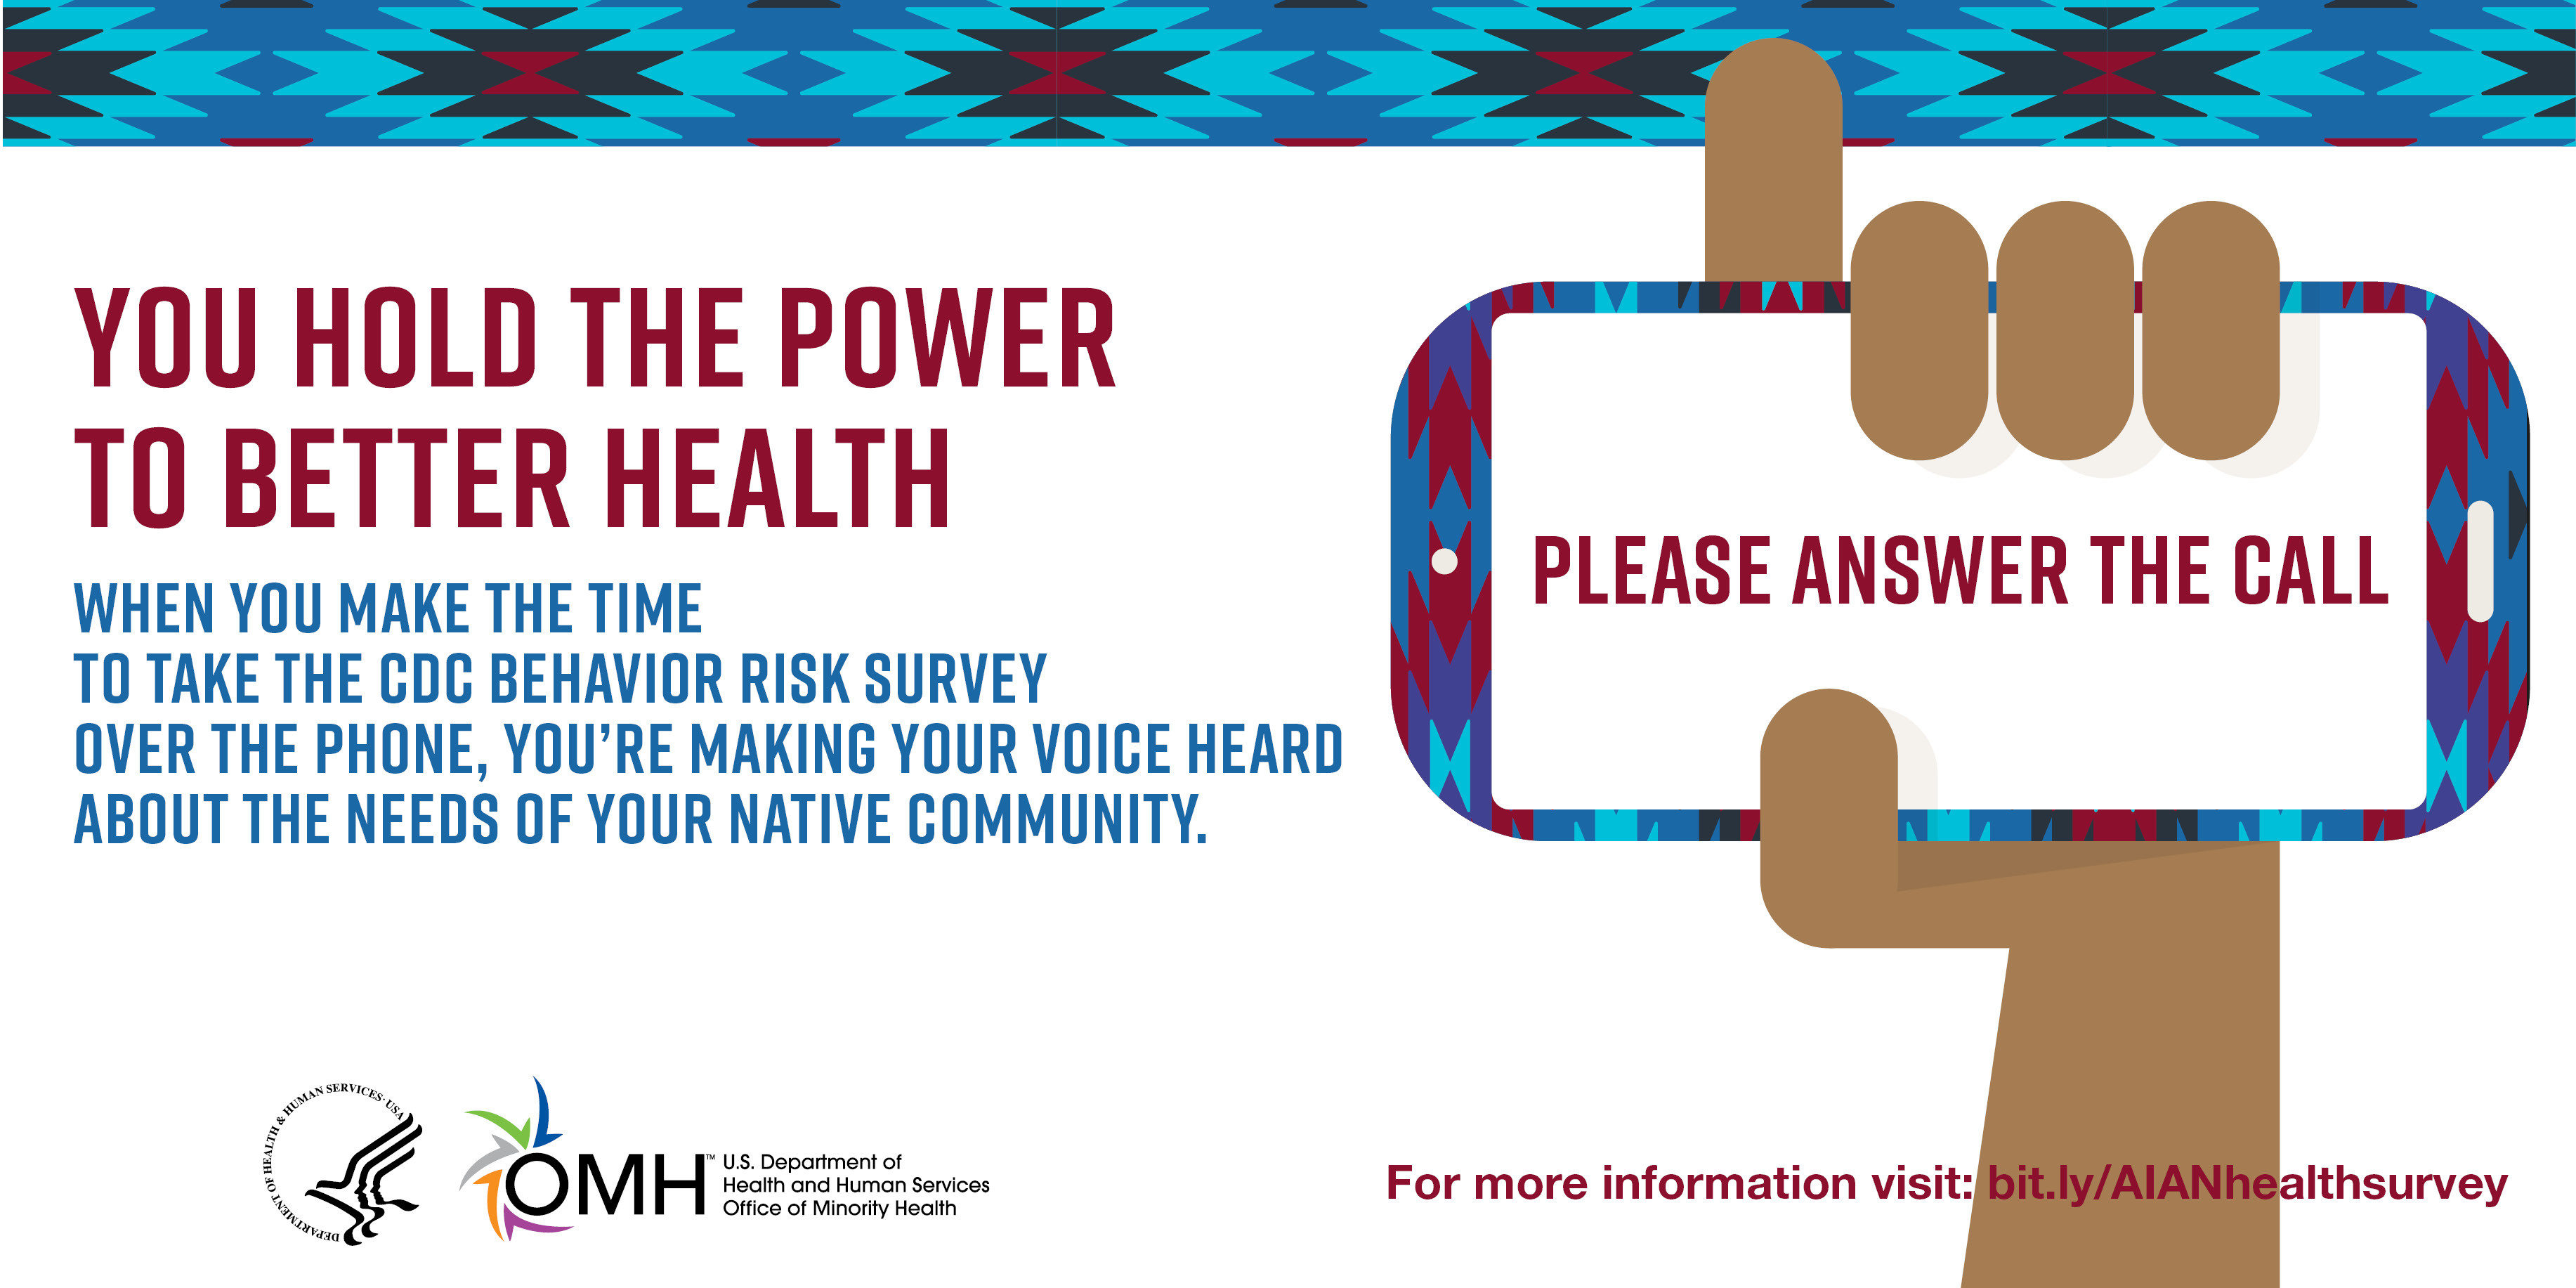 YOU HOLD THE PWER TO BETTER HEALTH 